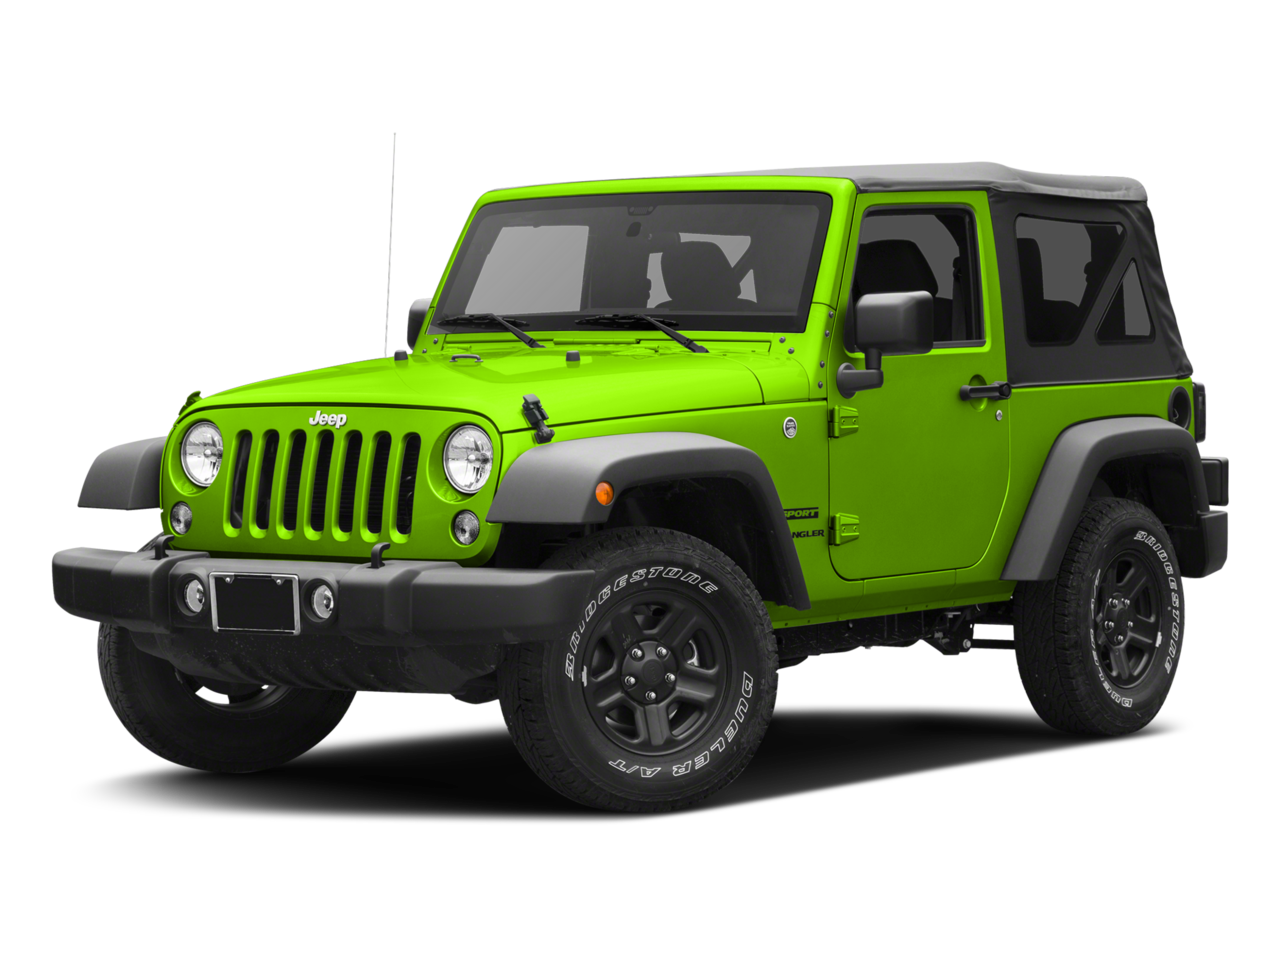 2017 jeep wrangler png. Rothrock motors allentown